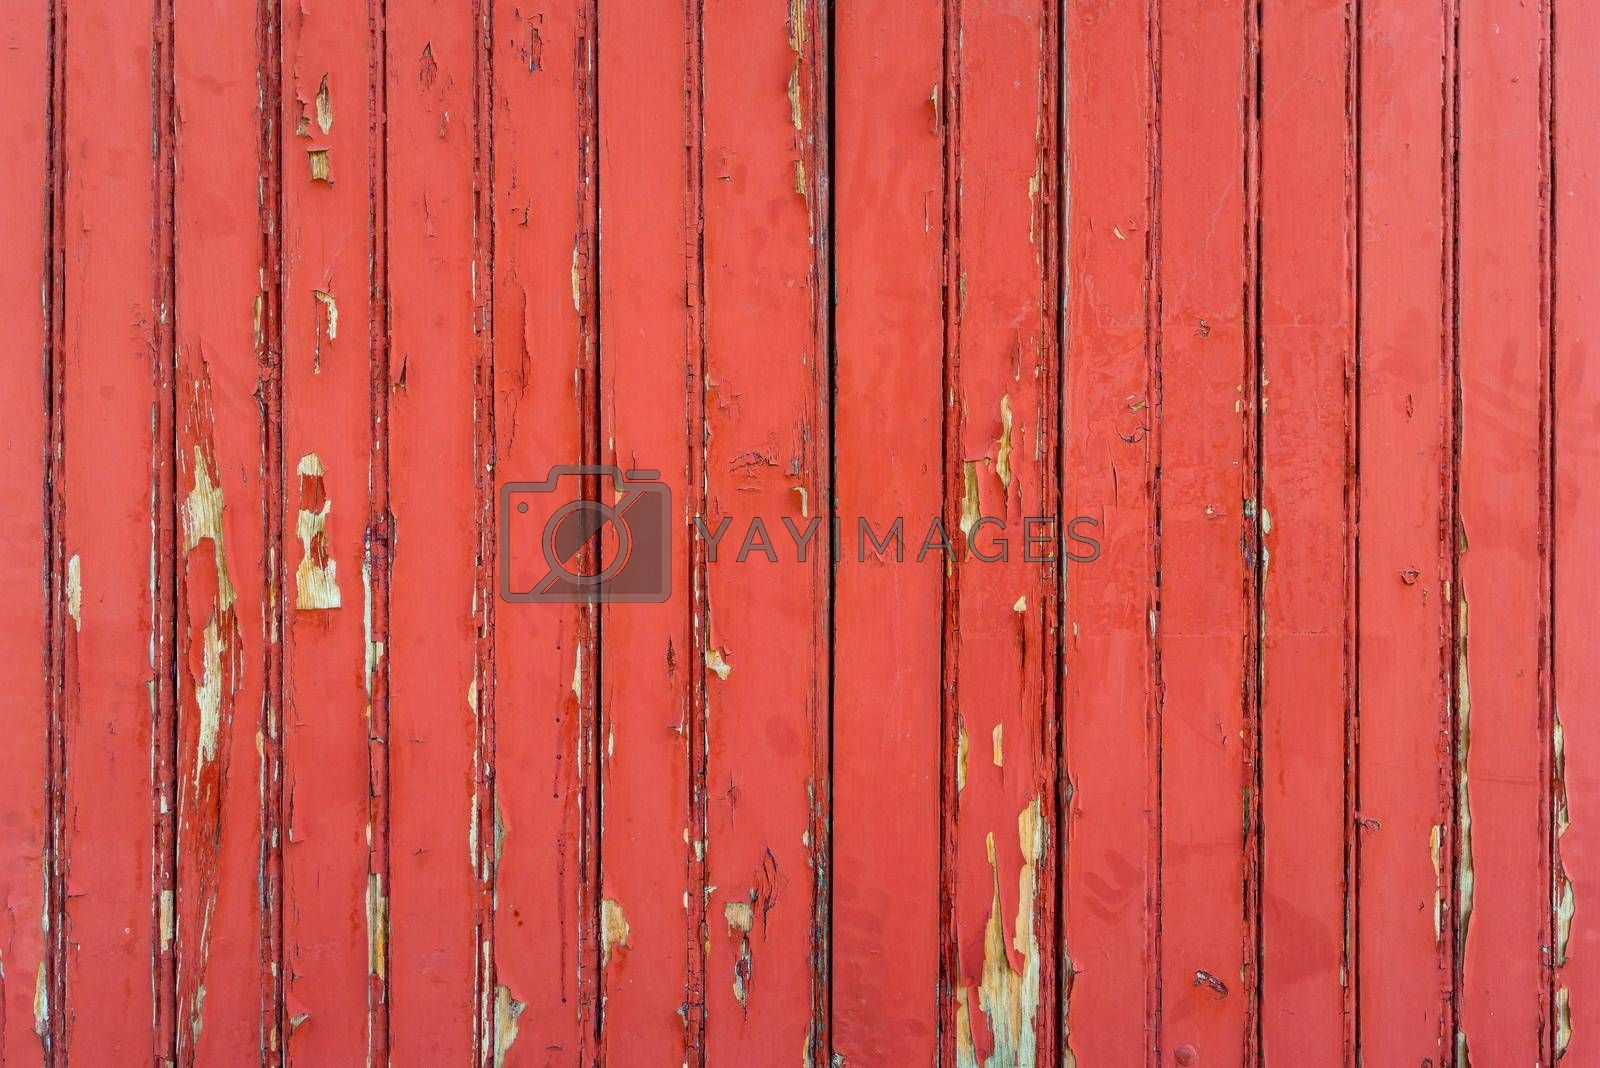 Red weathered wood wall background, peeling paint texture